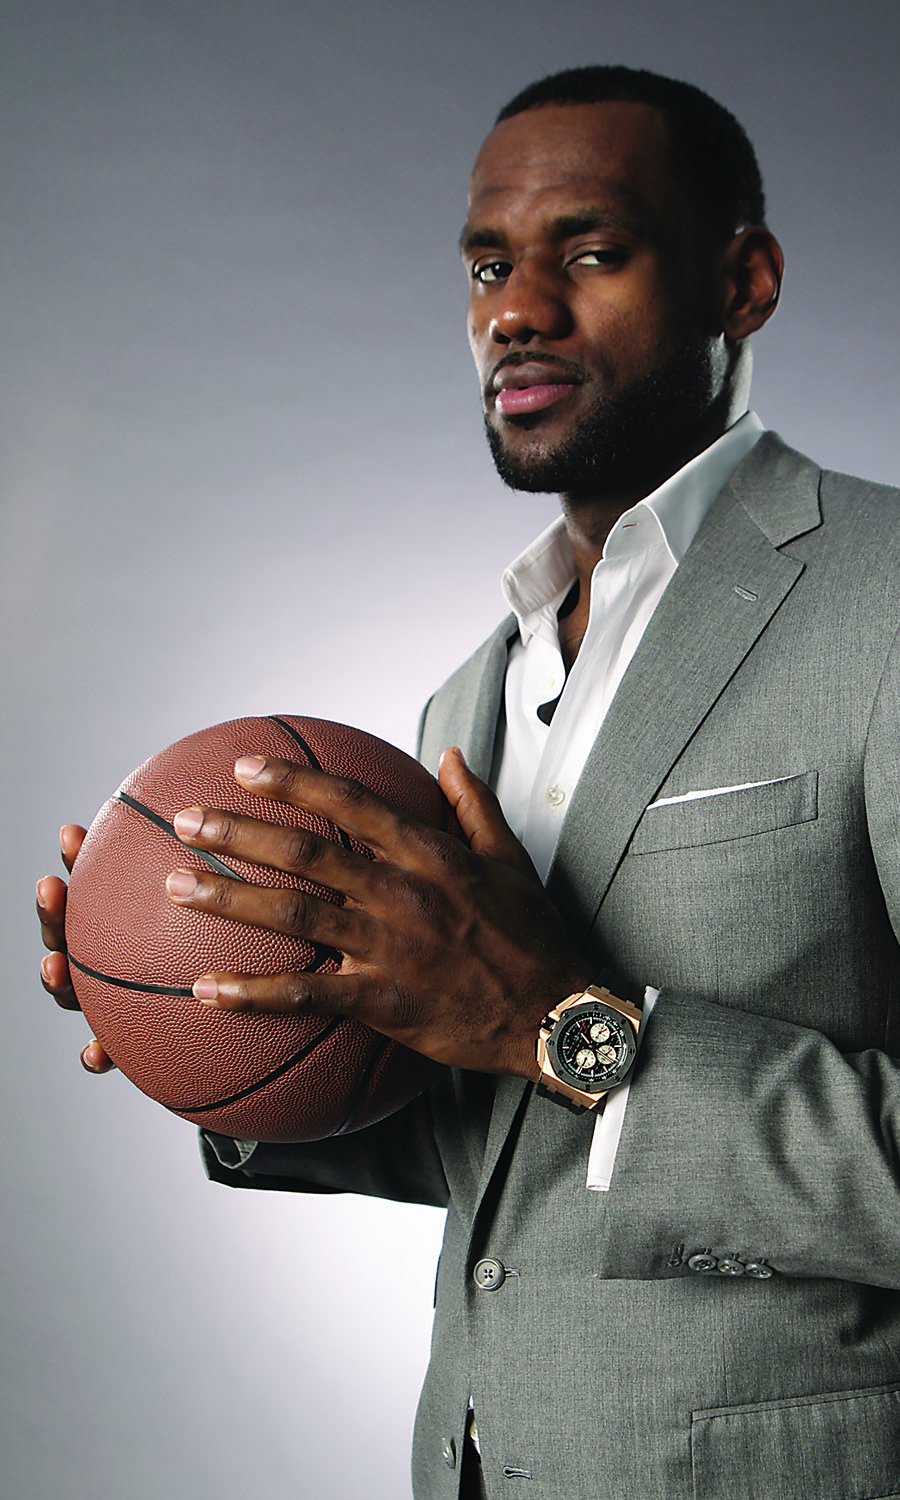 LeBron James Teams Up With Audemars Piguet, Plans to Create Limited-Edition Watch for Charity